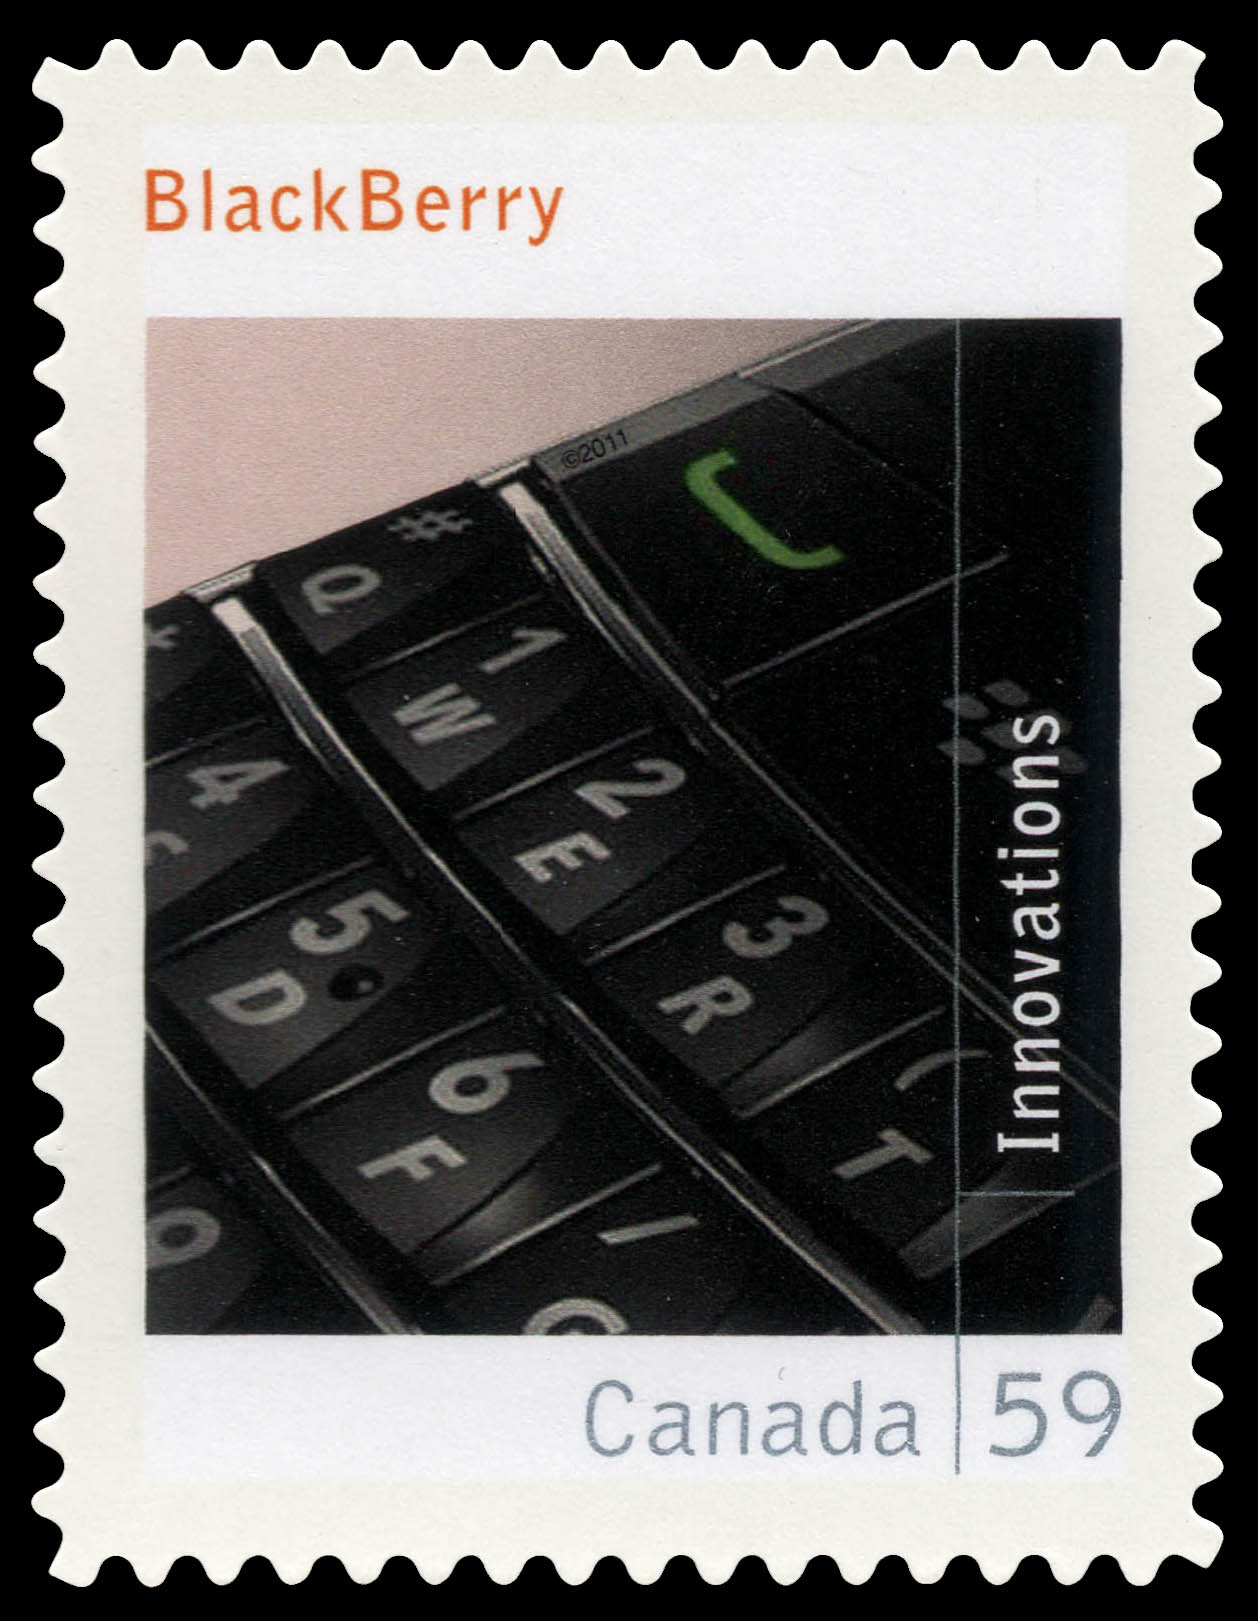 Blackberry Canada Postage Stamp | Canadian Innovations